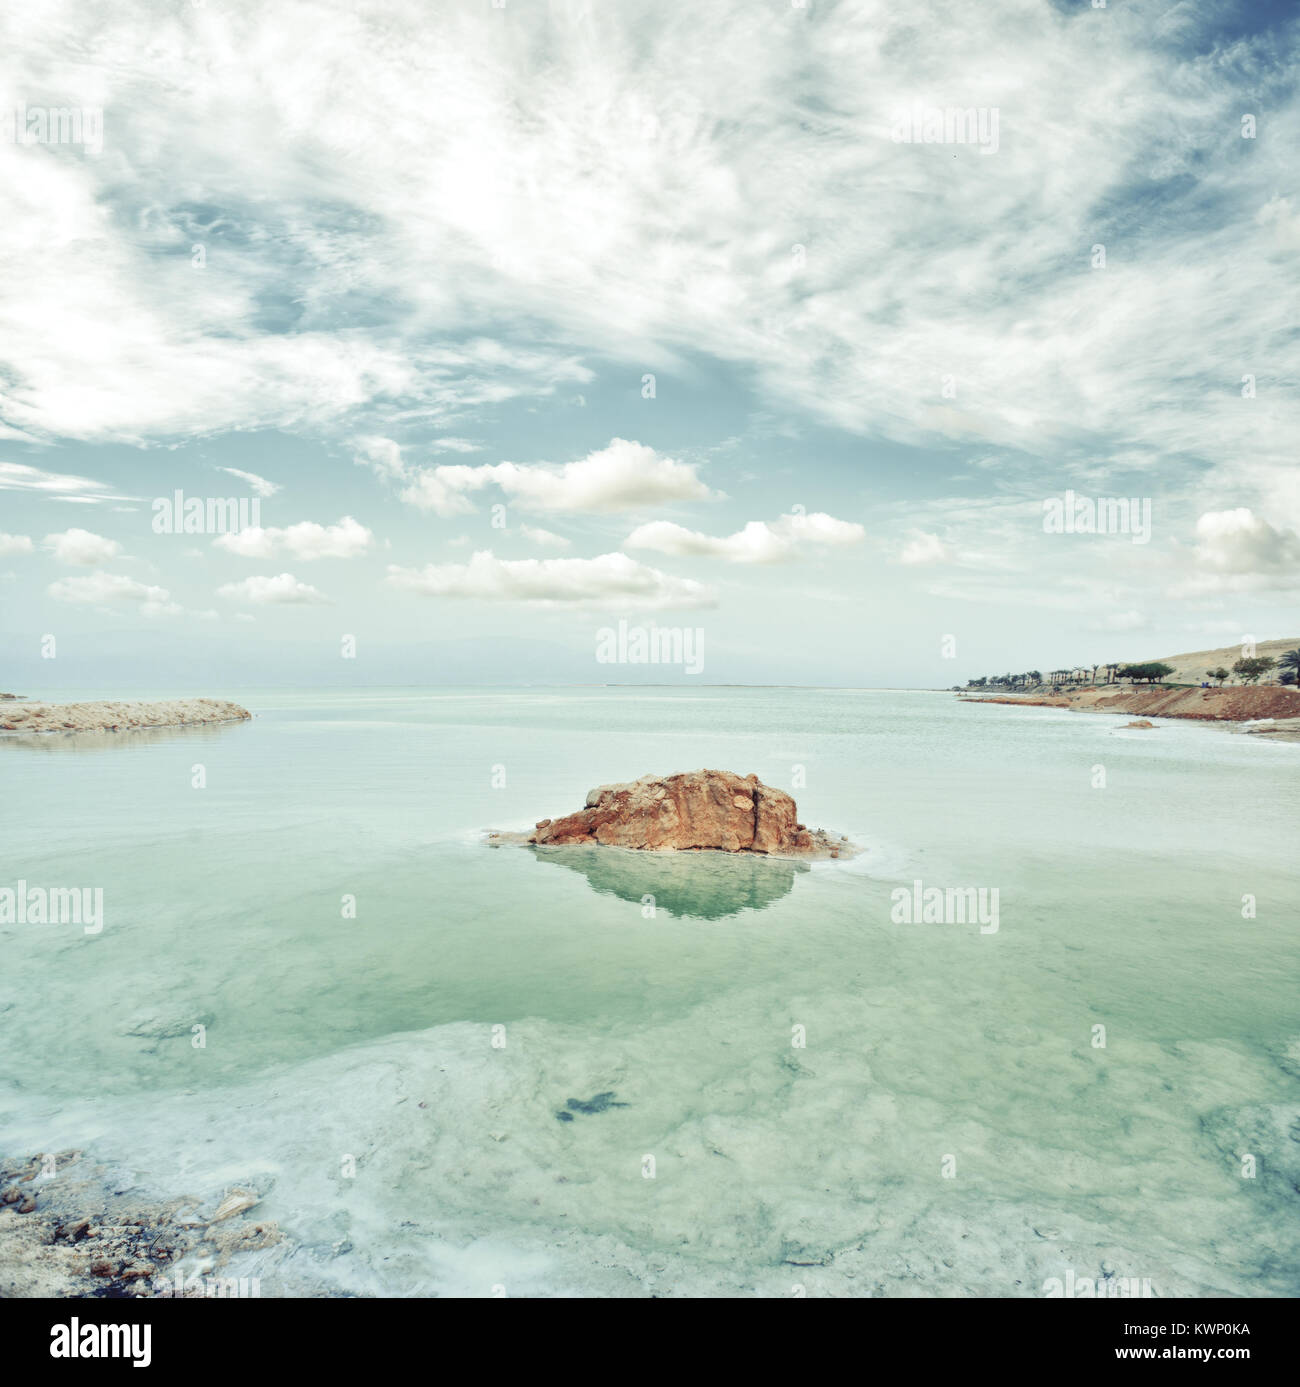 View of Dead Sea coastline at sunset, Israel Vintage filter applied Stock Photo